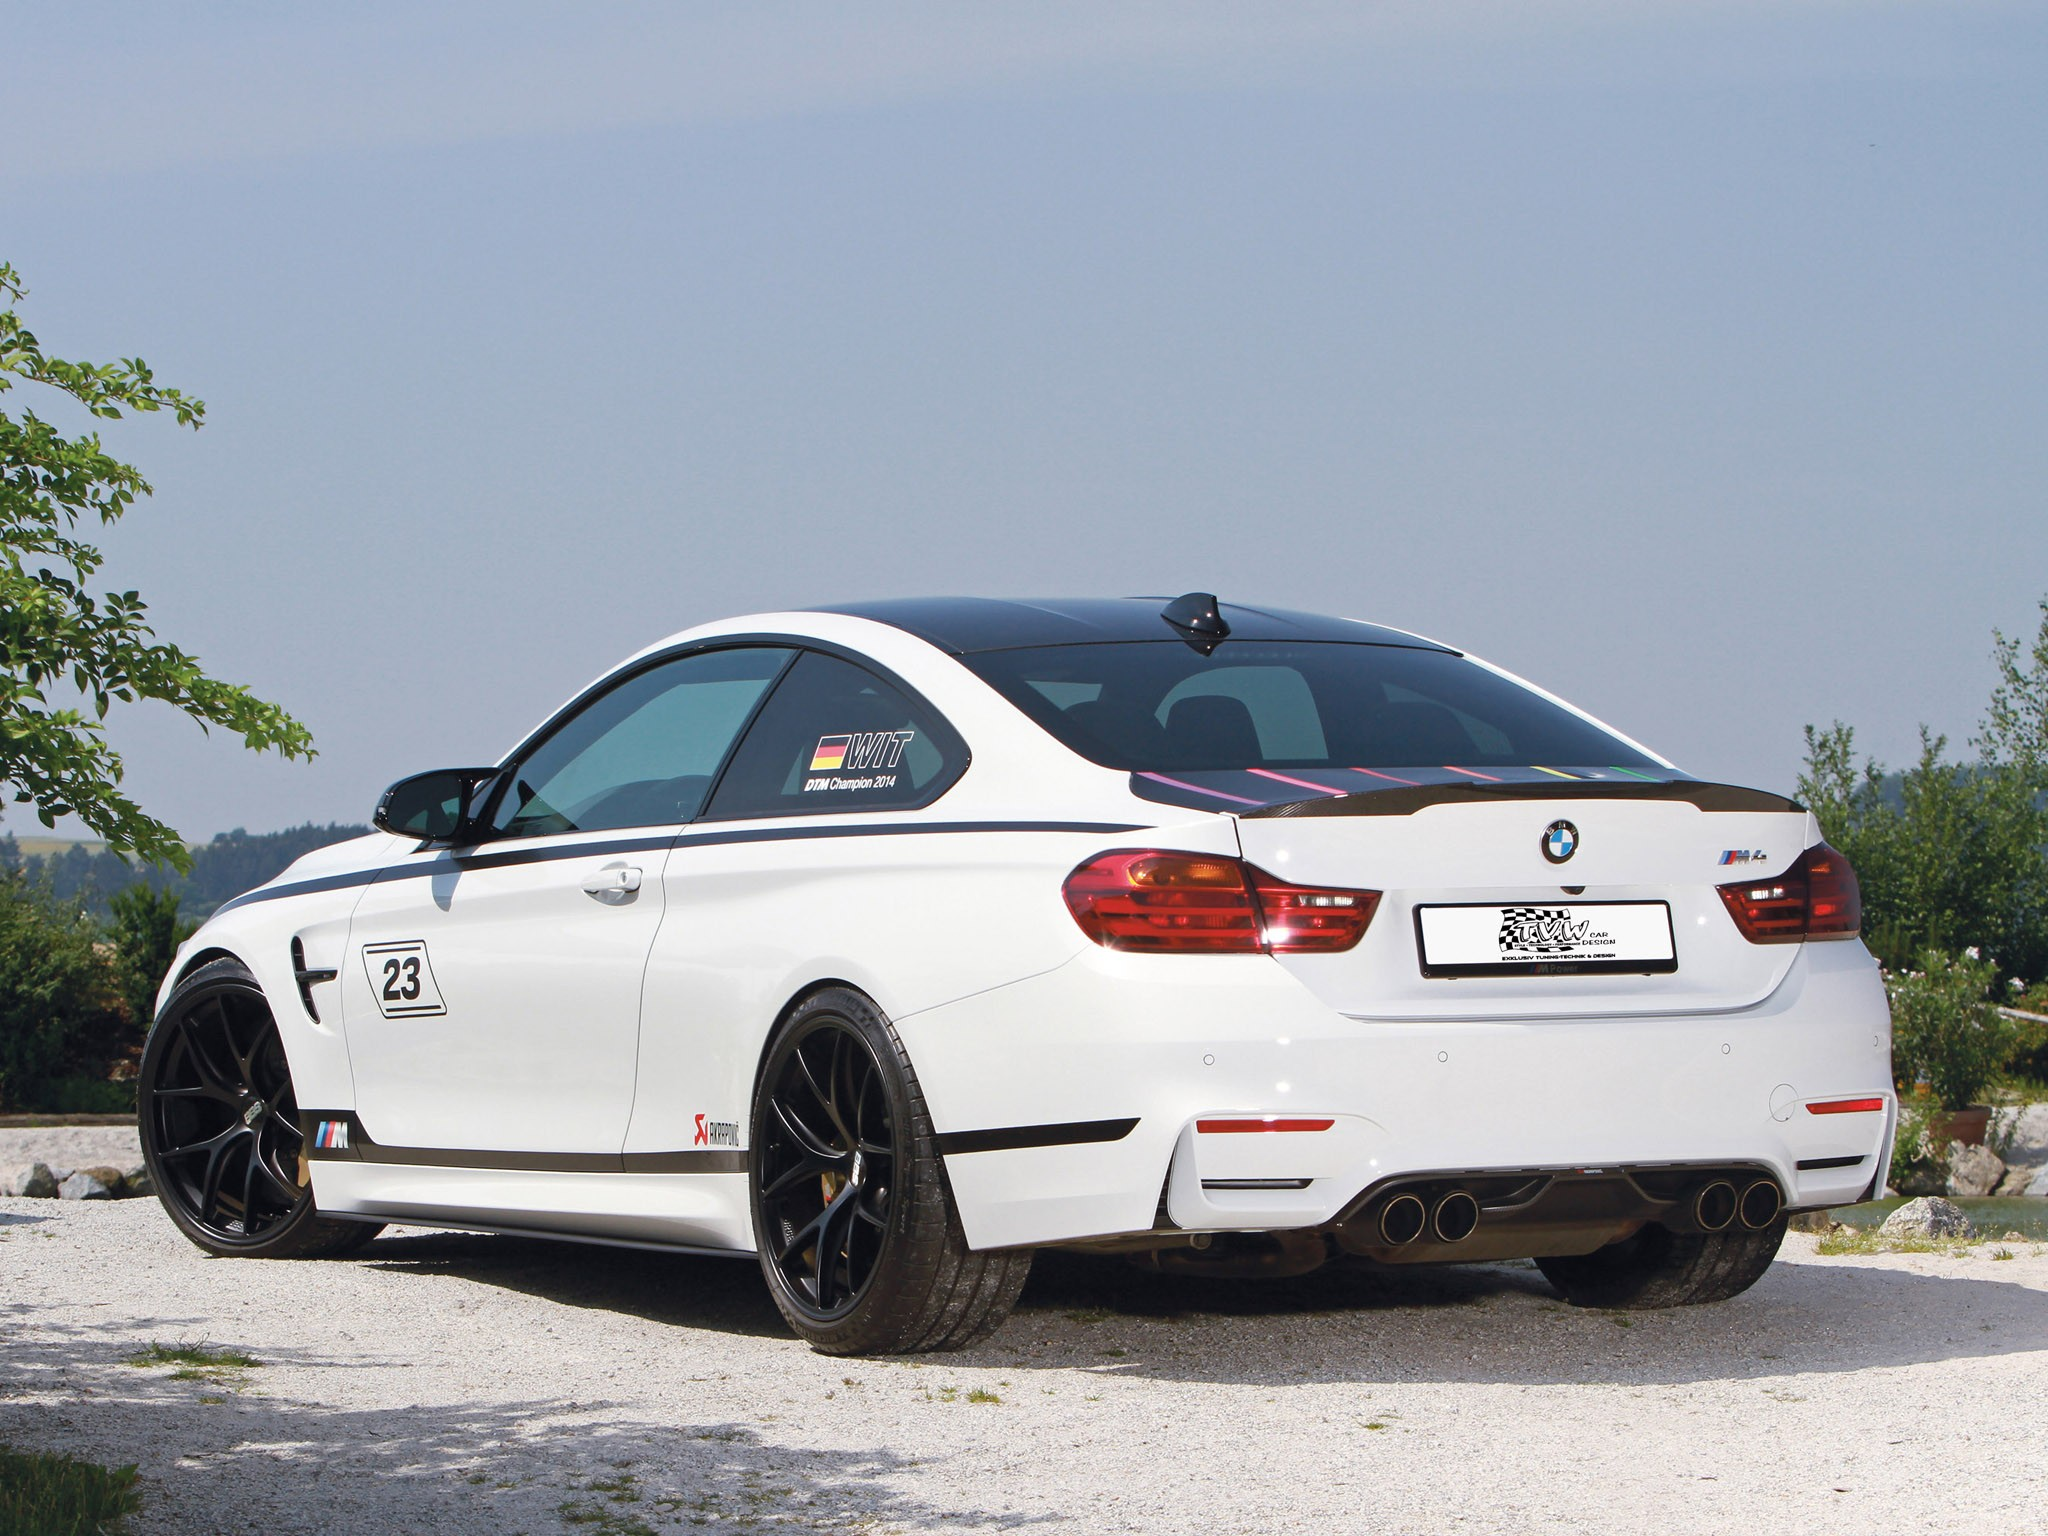 2015 Bmw M4 DTM Champion Edition - TVW Car-Design